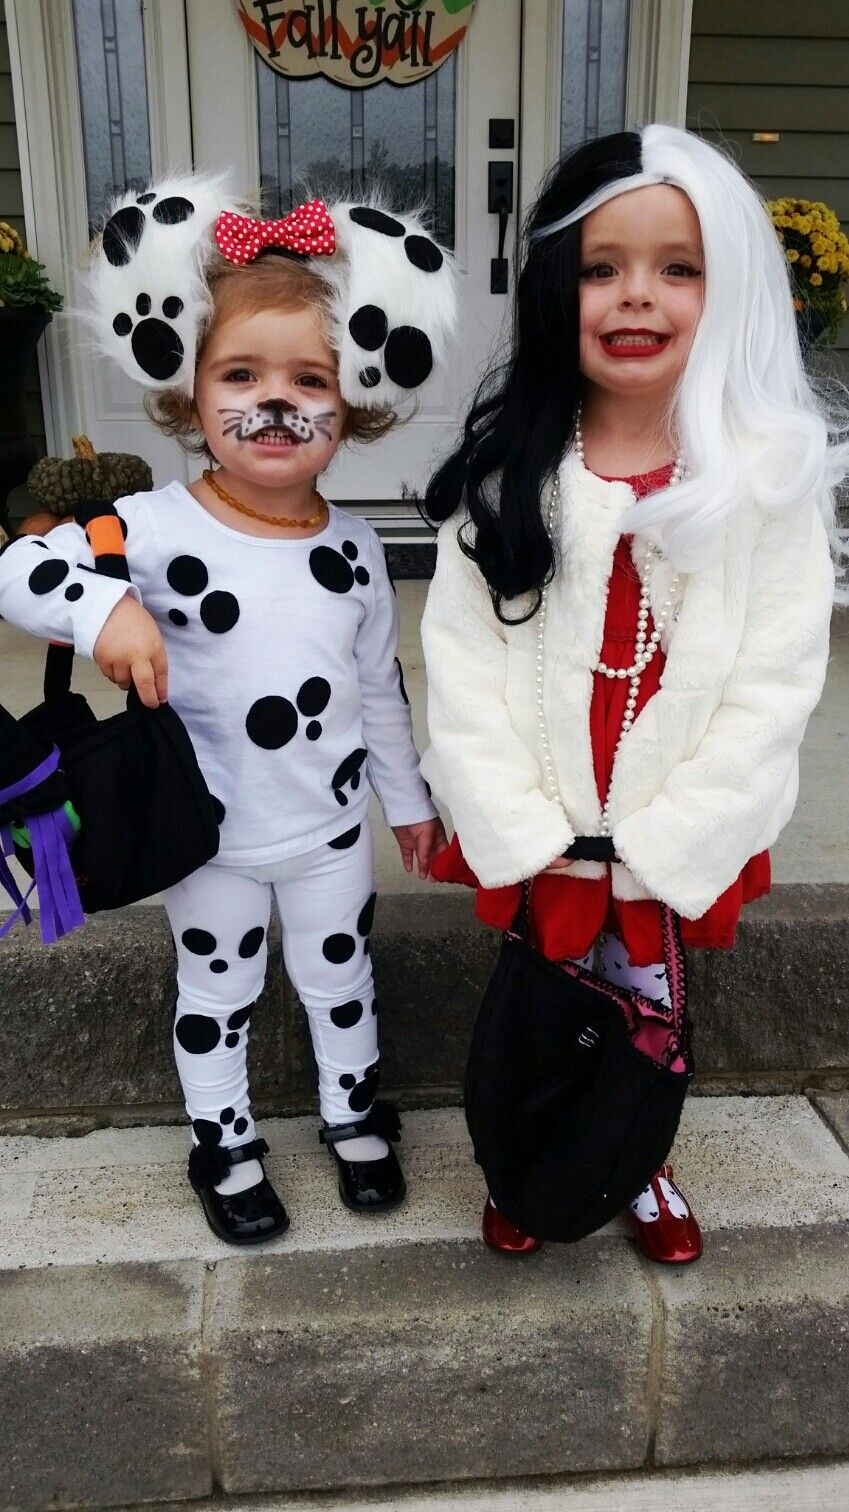 Cruella Deville and Dalmation! Another cute sibling